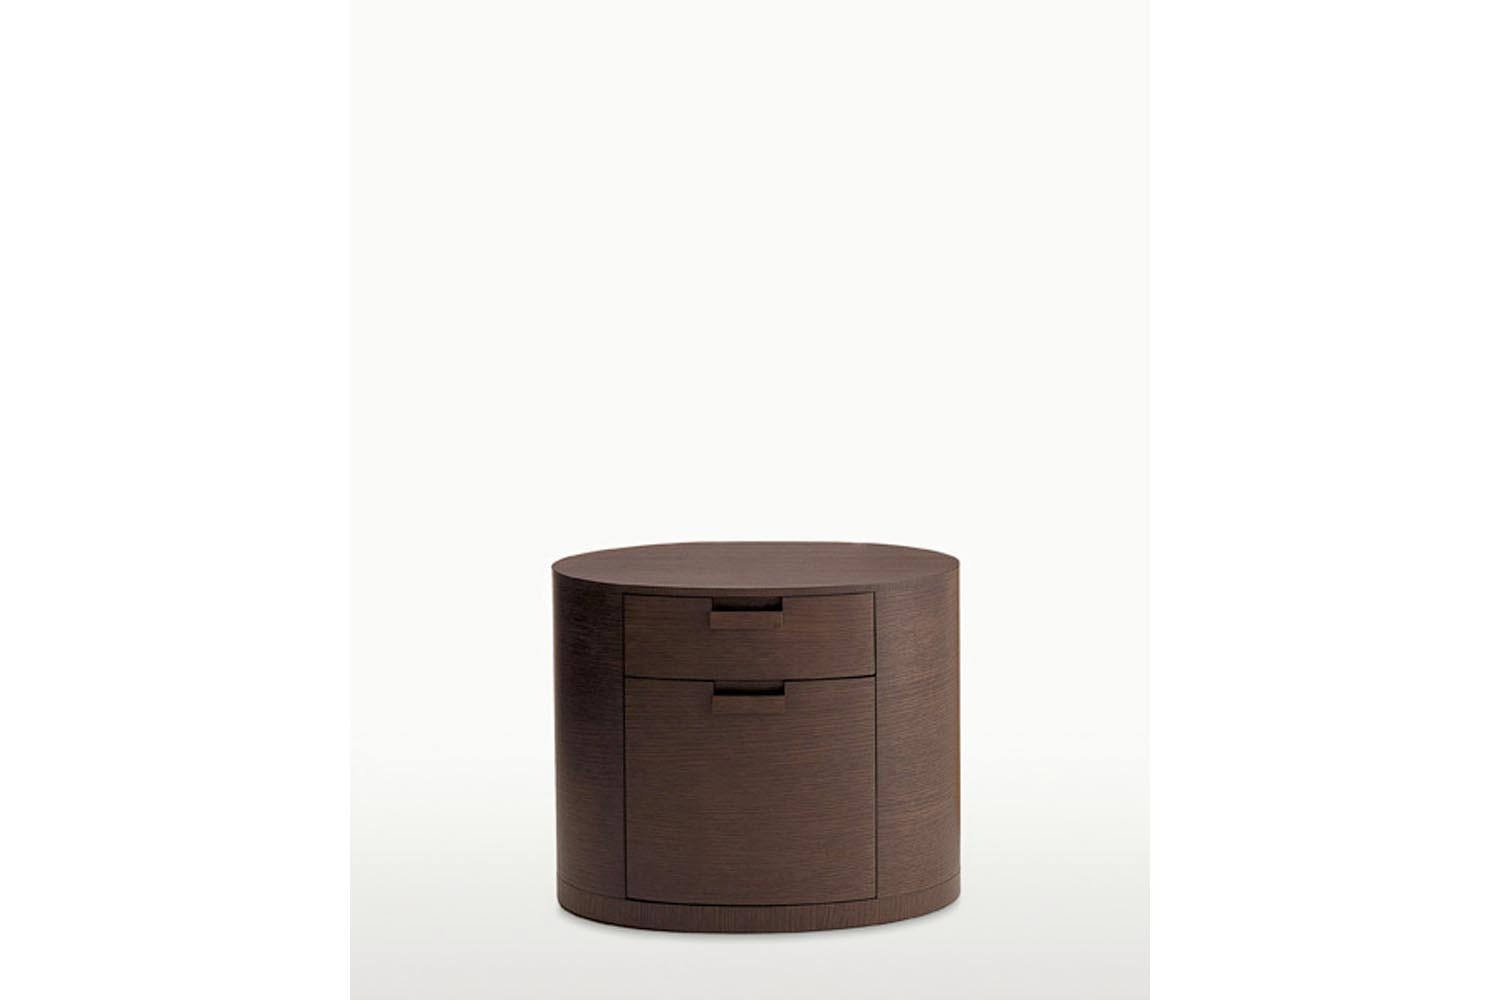 Amphora Bedside Table by Antonio Citterio for Maxalto